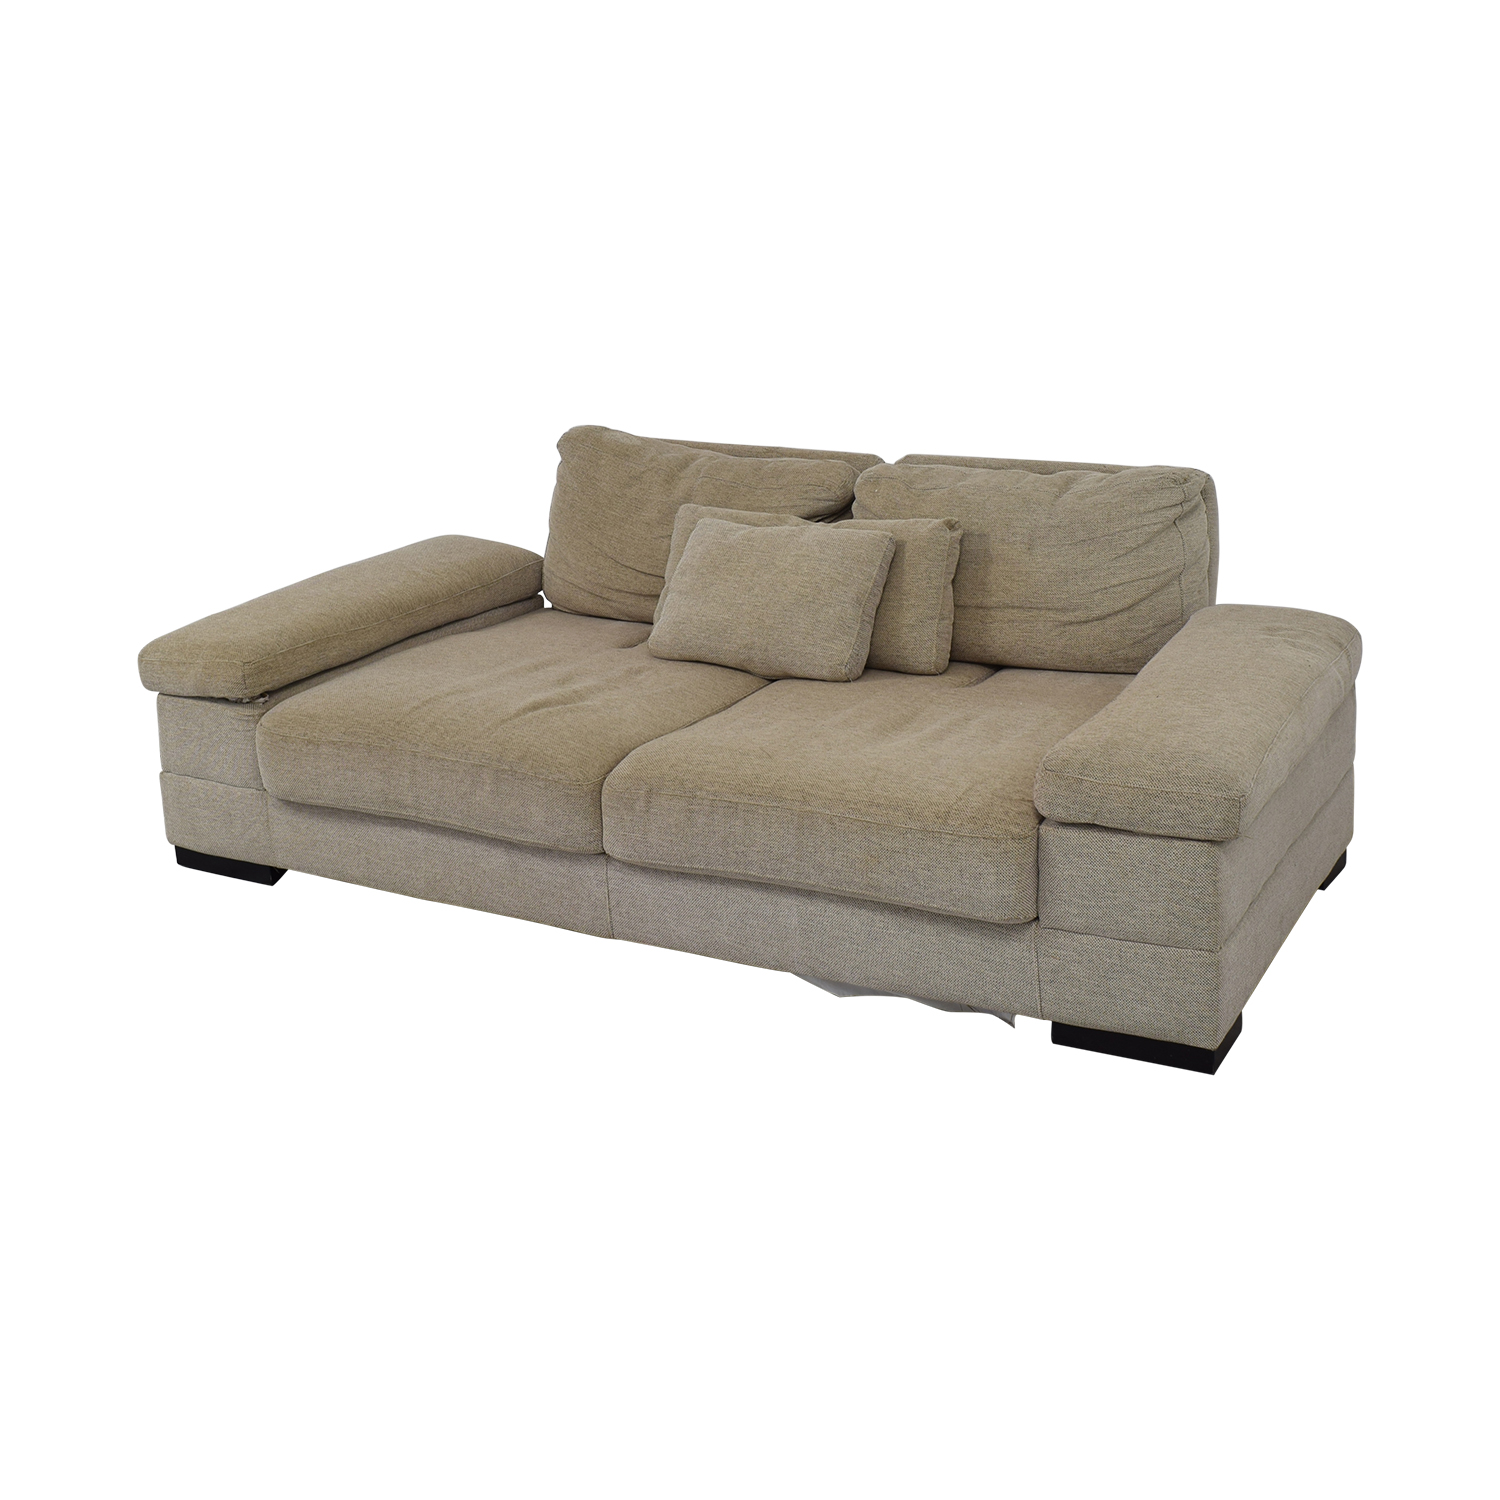 Lazzoni Lazzoni Kema Sectional Sofa Bed on sale